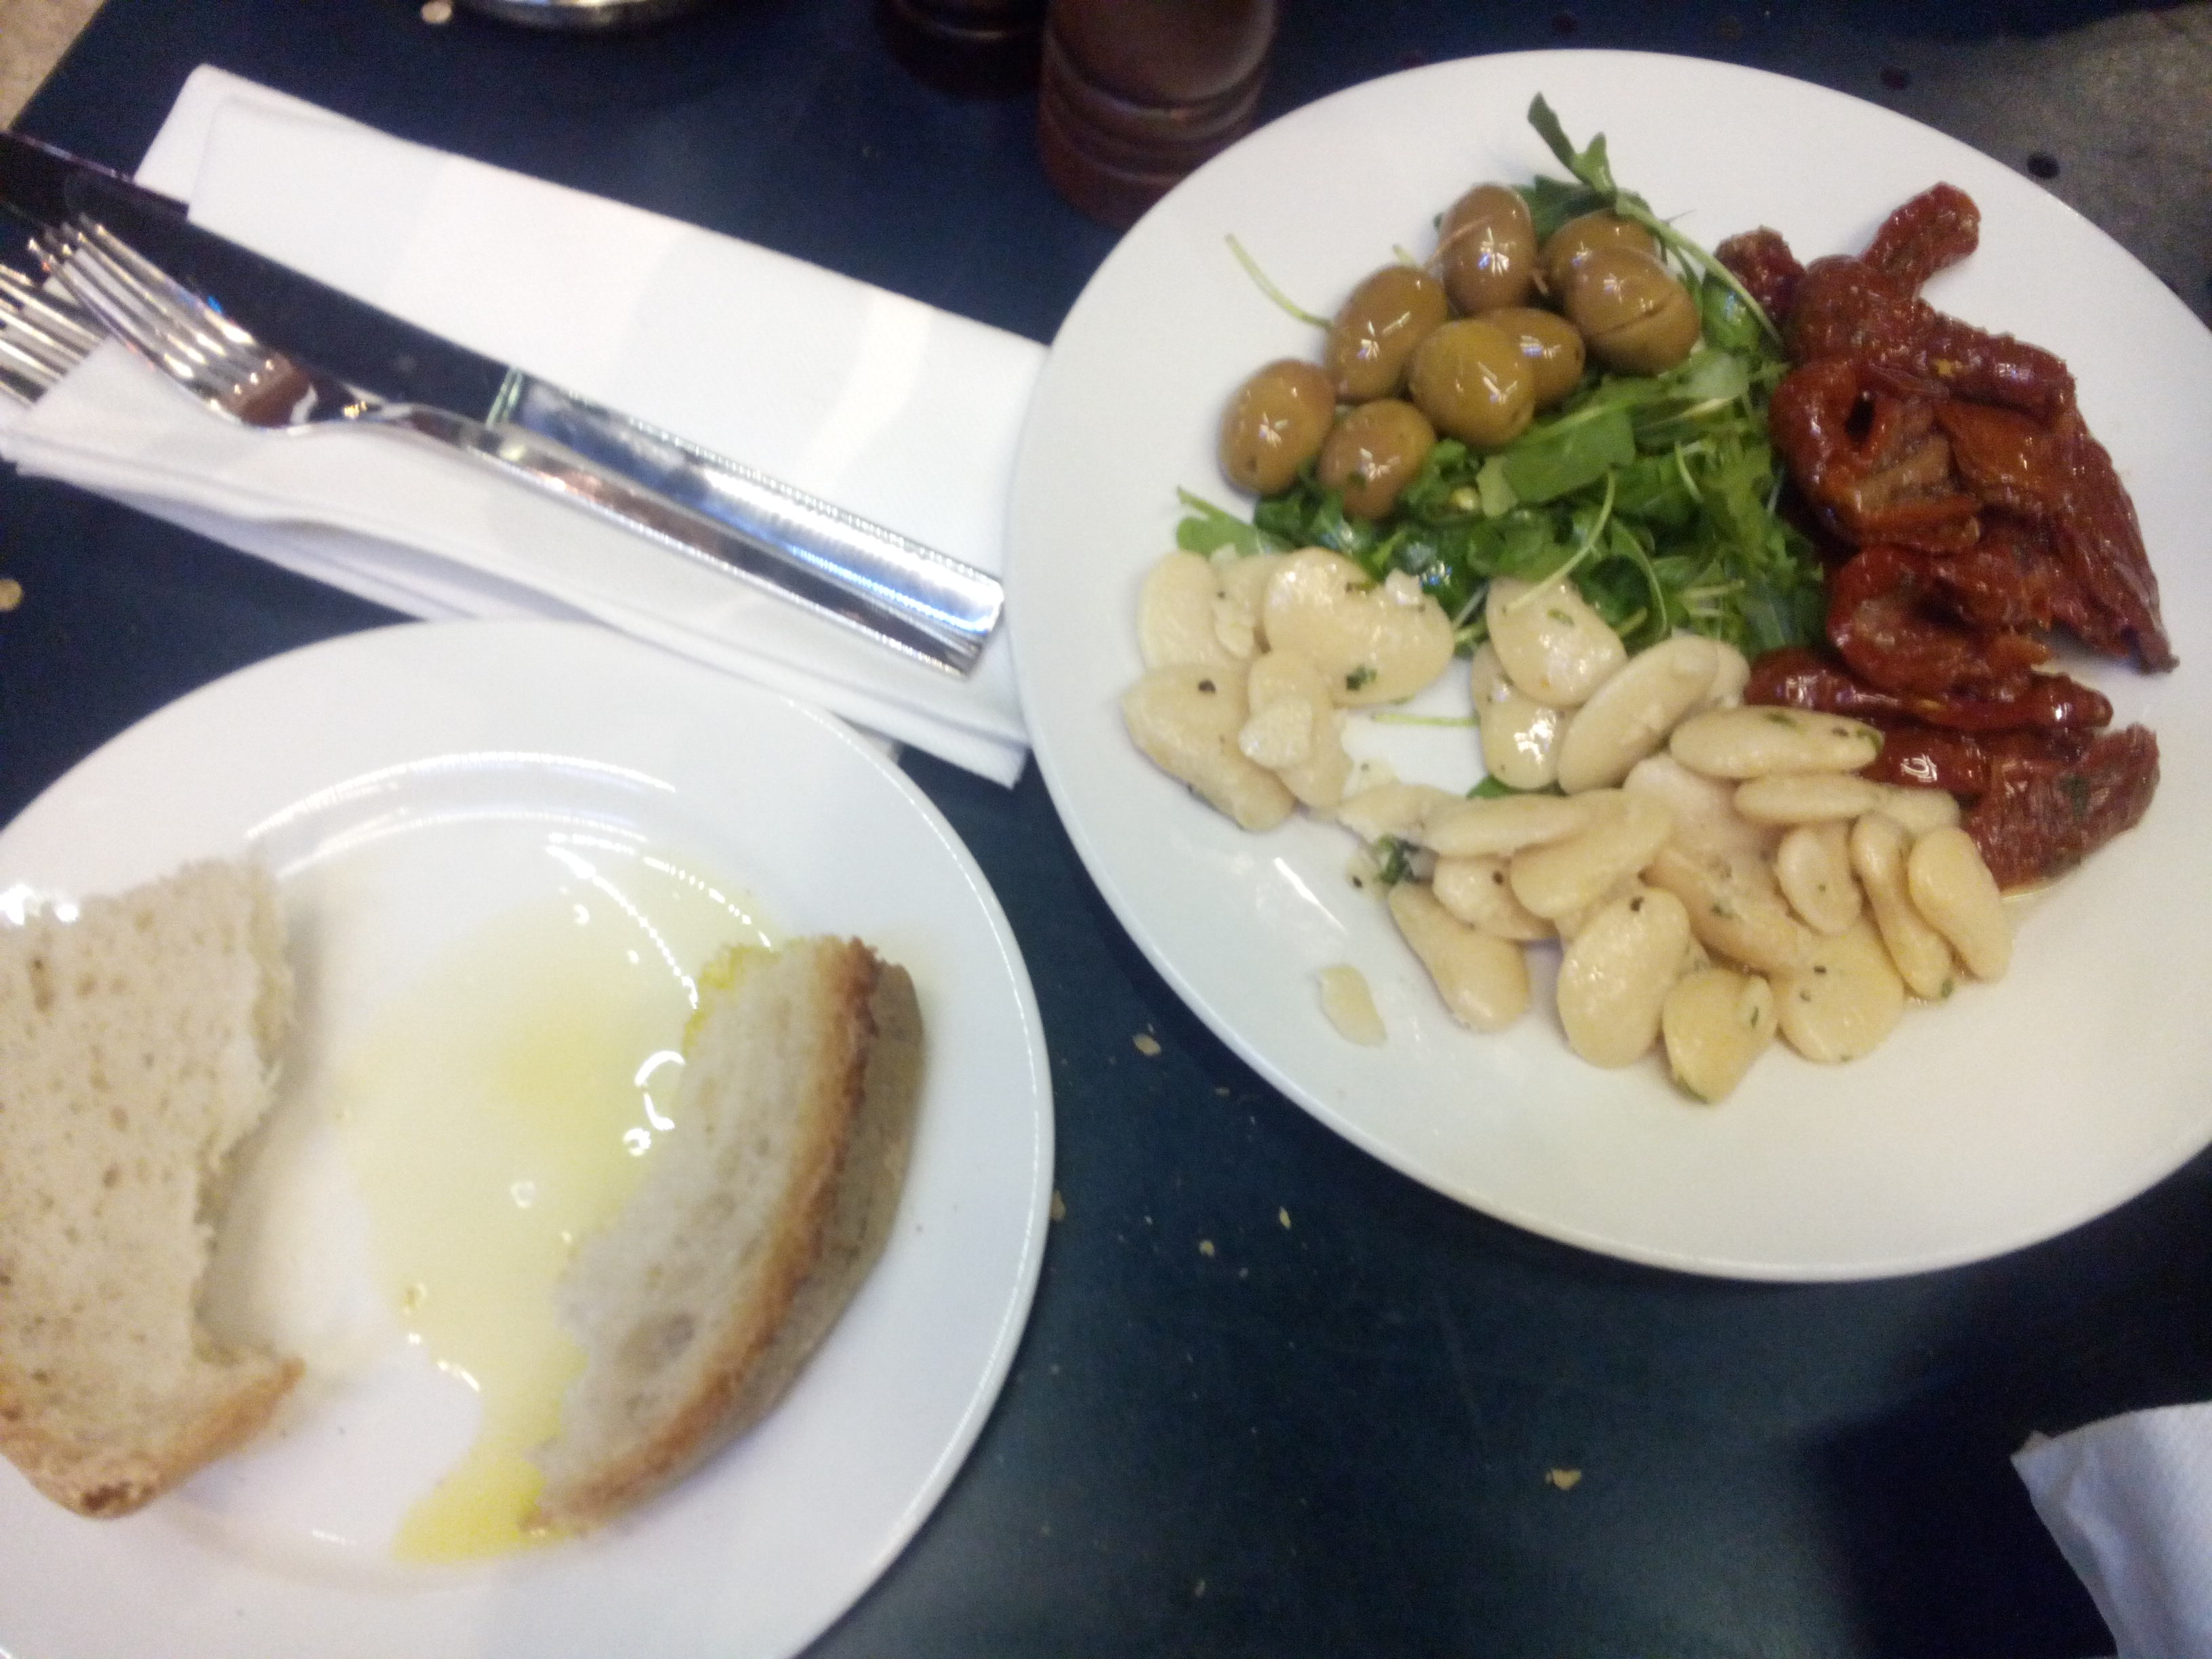 Two plates, one with bread and oil, the other with white beans, red sundried tomatoes and green olives